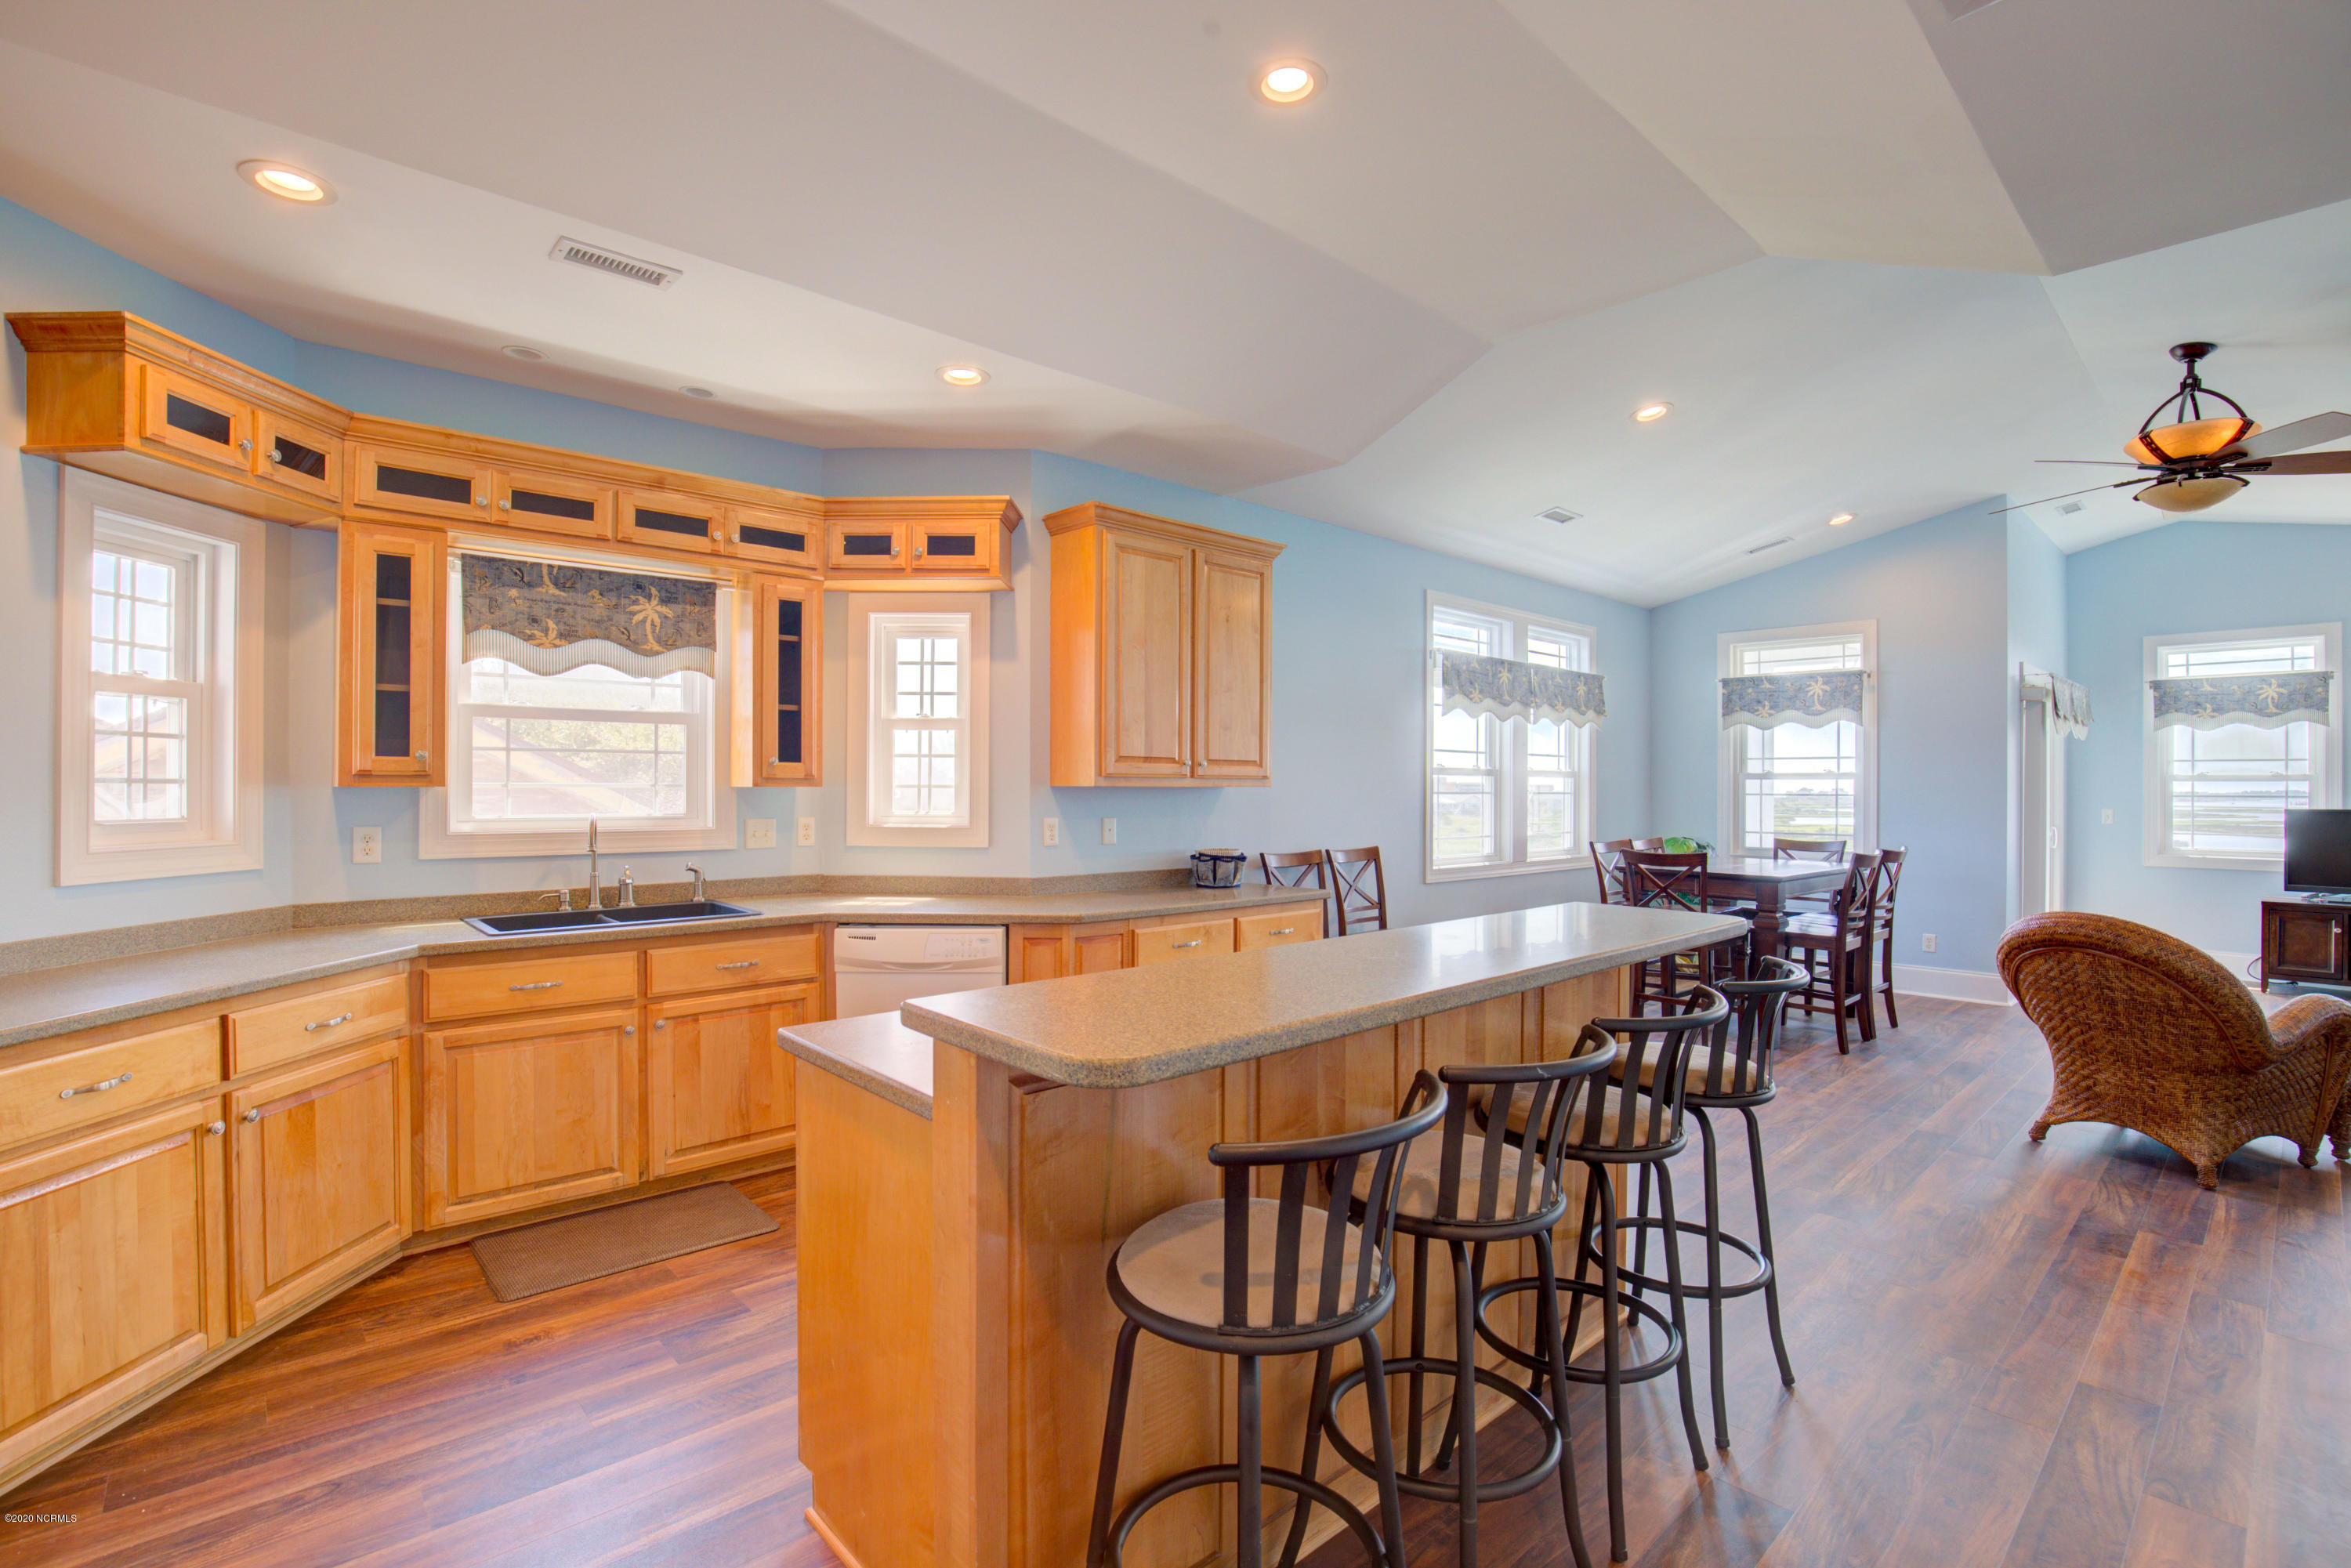 241 Bayview Drive, North Topsail Beach, North Carolina 28460, 4 Bedrooms Bedrooms, ,3 BathroomsBathrooms,Residential,For Sale,Bayview,100234089